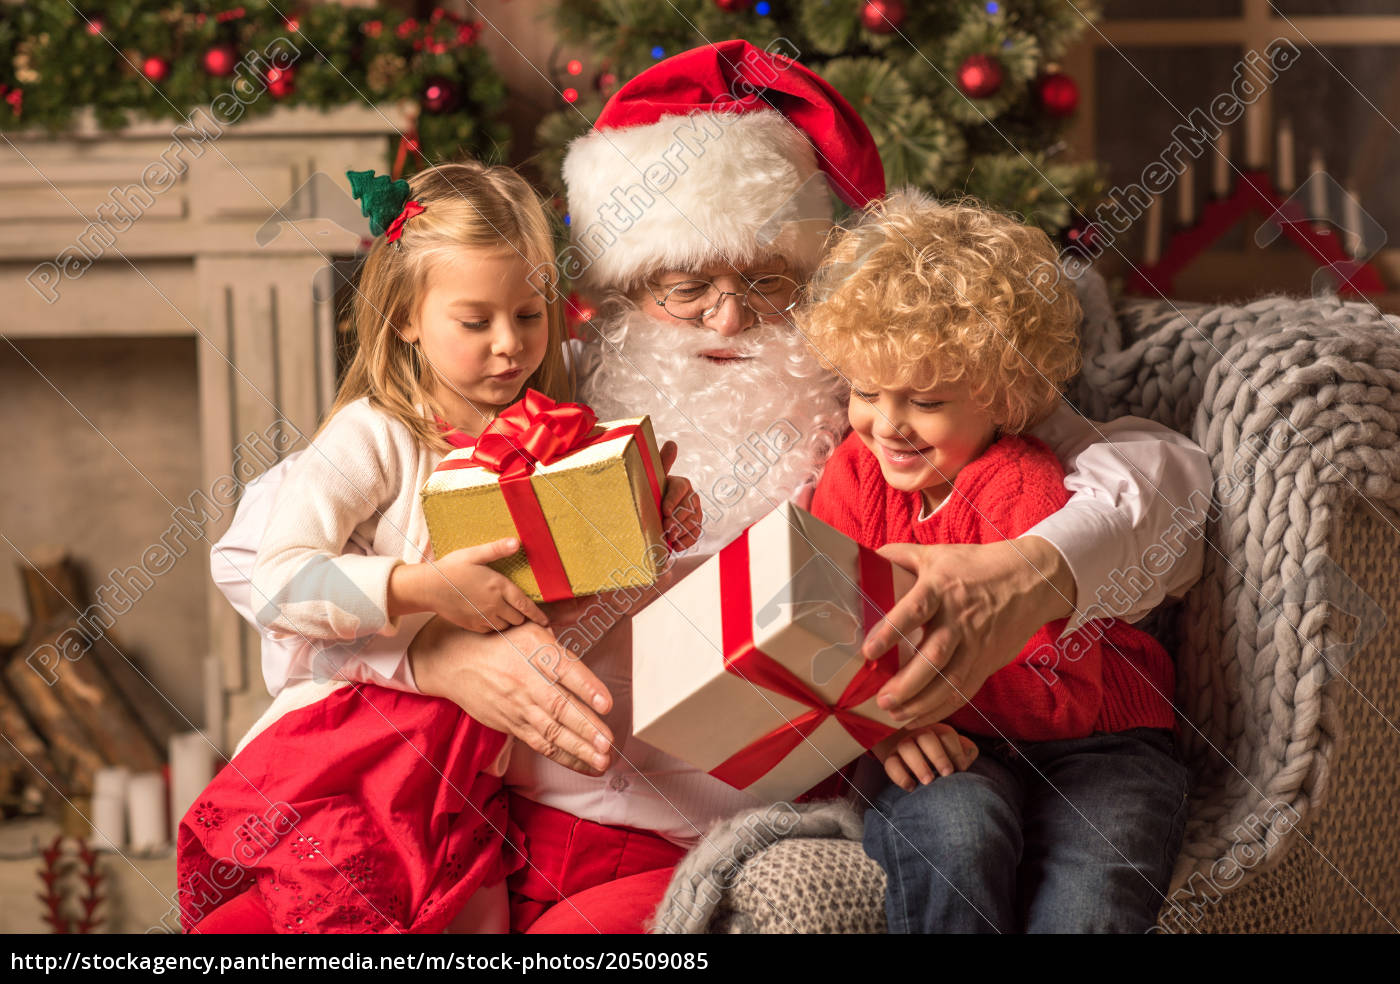 santa, claus, with, children, holding, gift - 20509085